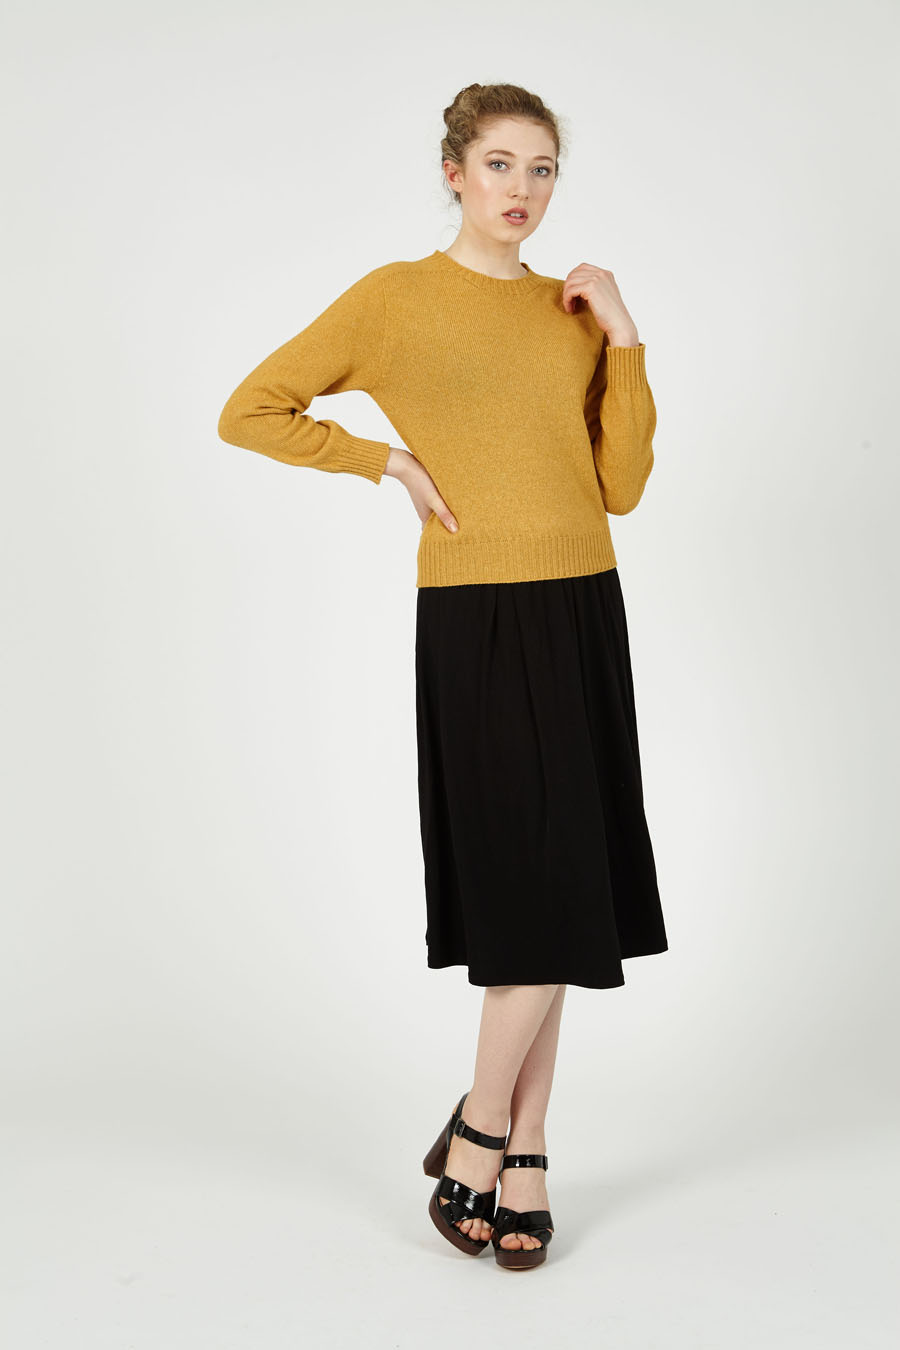 T-lab Alana womens sweater citrus model full